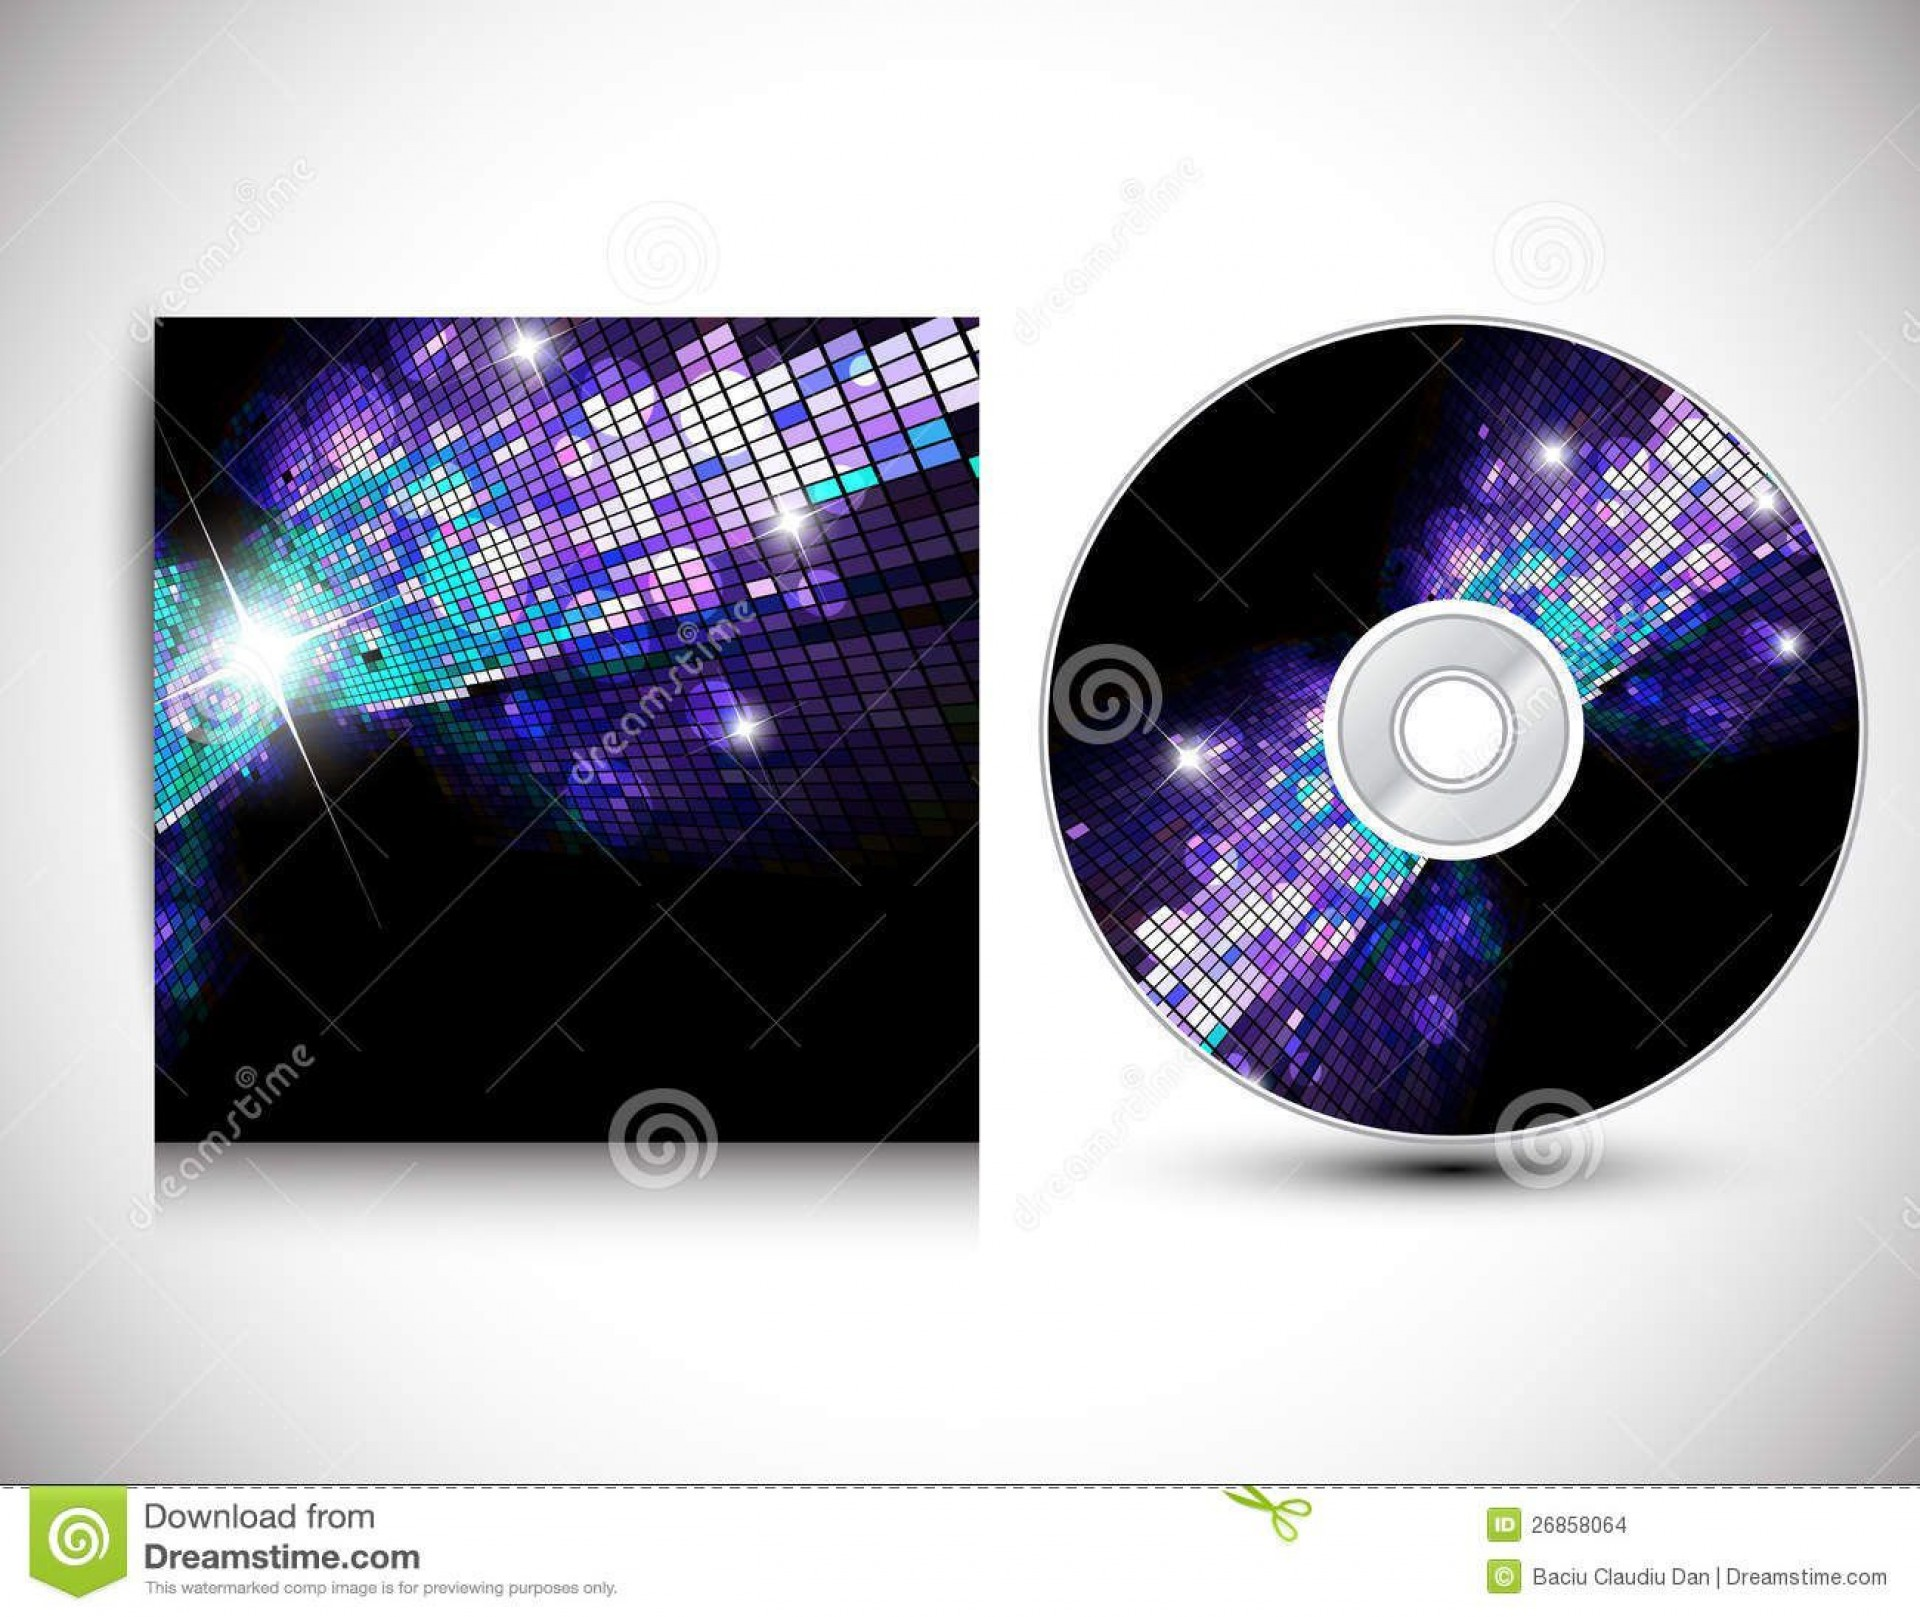 002 Formidable Cd Cover Design Template  Free Vector Illustration Word Psd Download1920